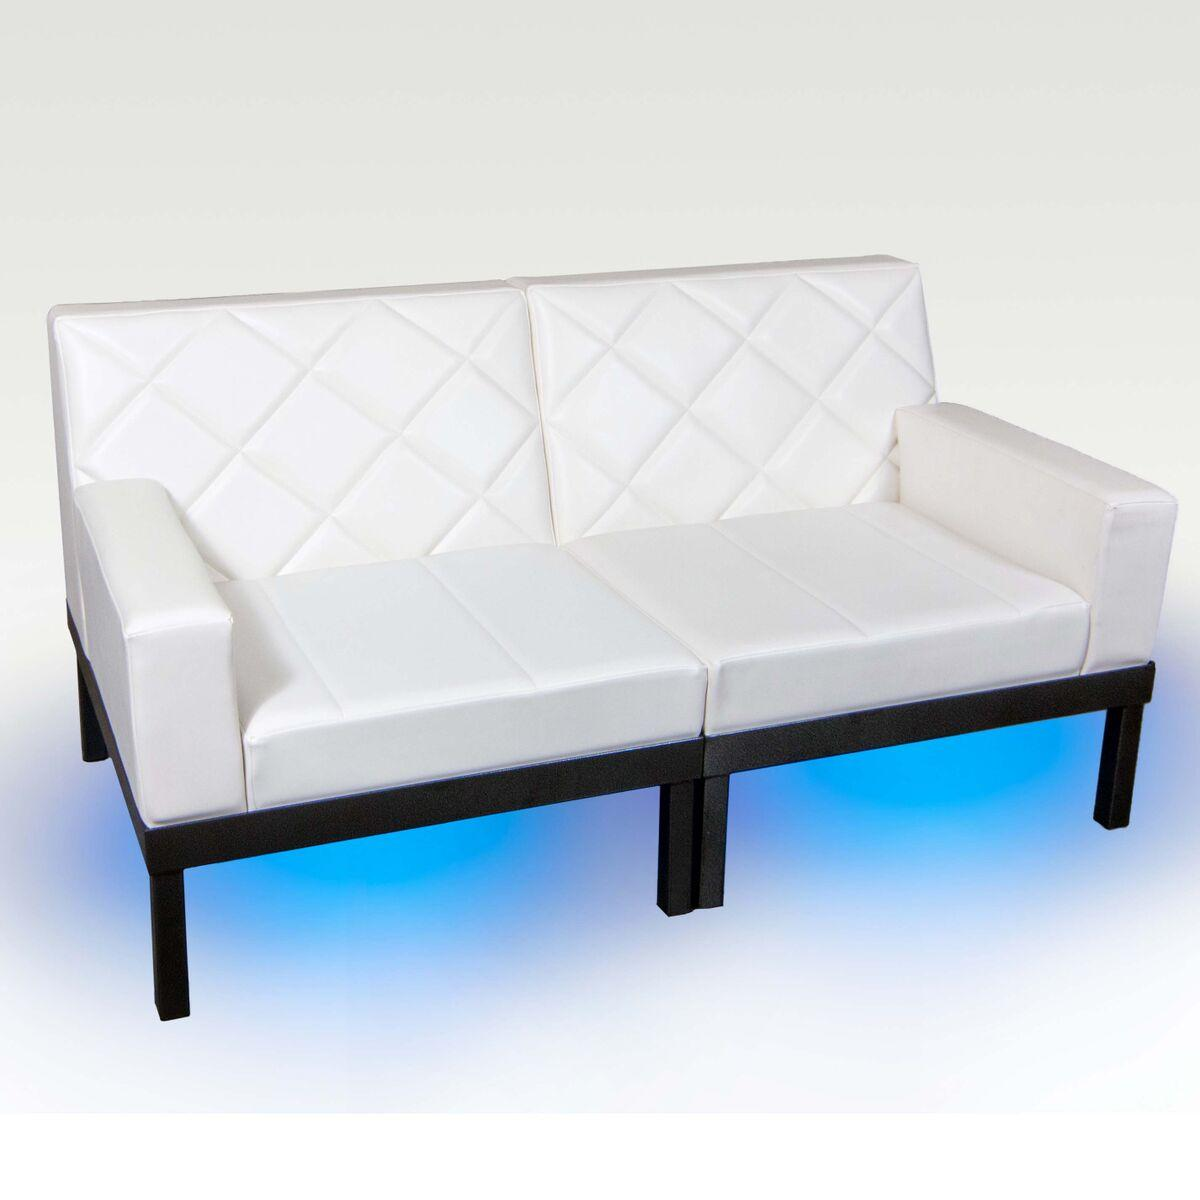 Astonishing Furniture Rentals Totally Mod A Quest Events Company Ocoug Best Dining Table And Chair Ideas Images Ocougorg